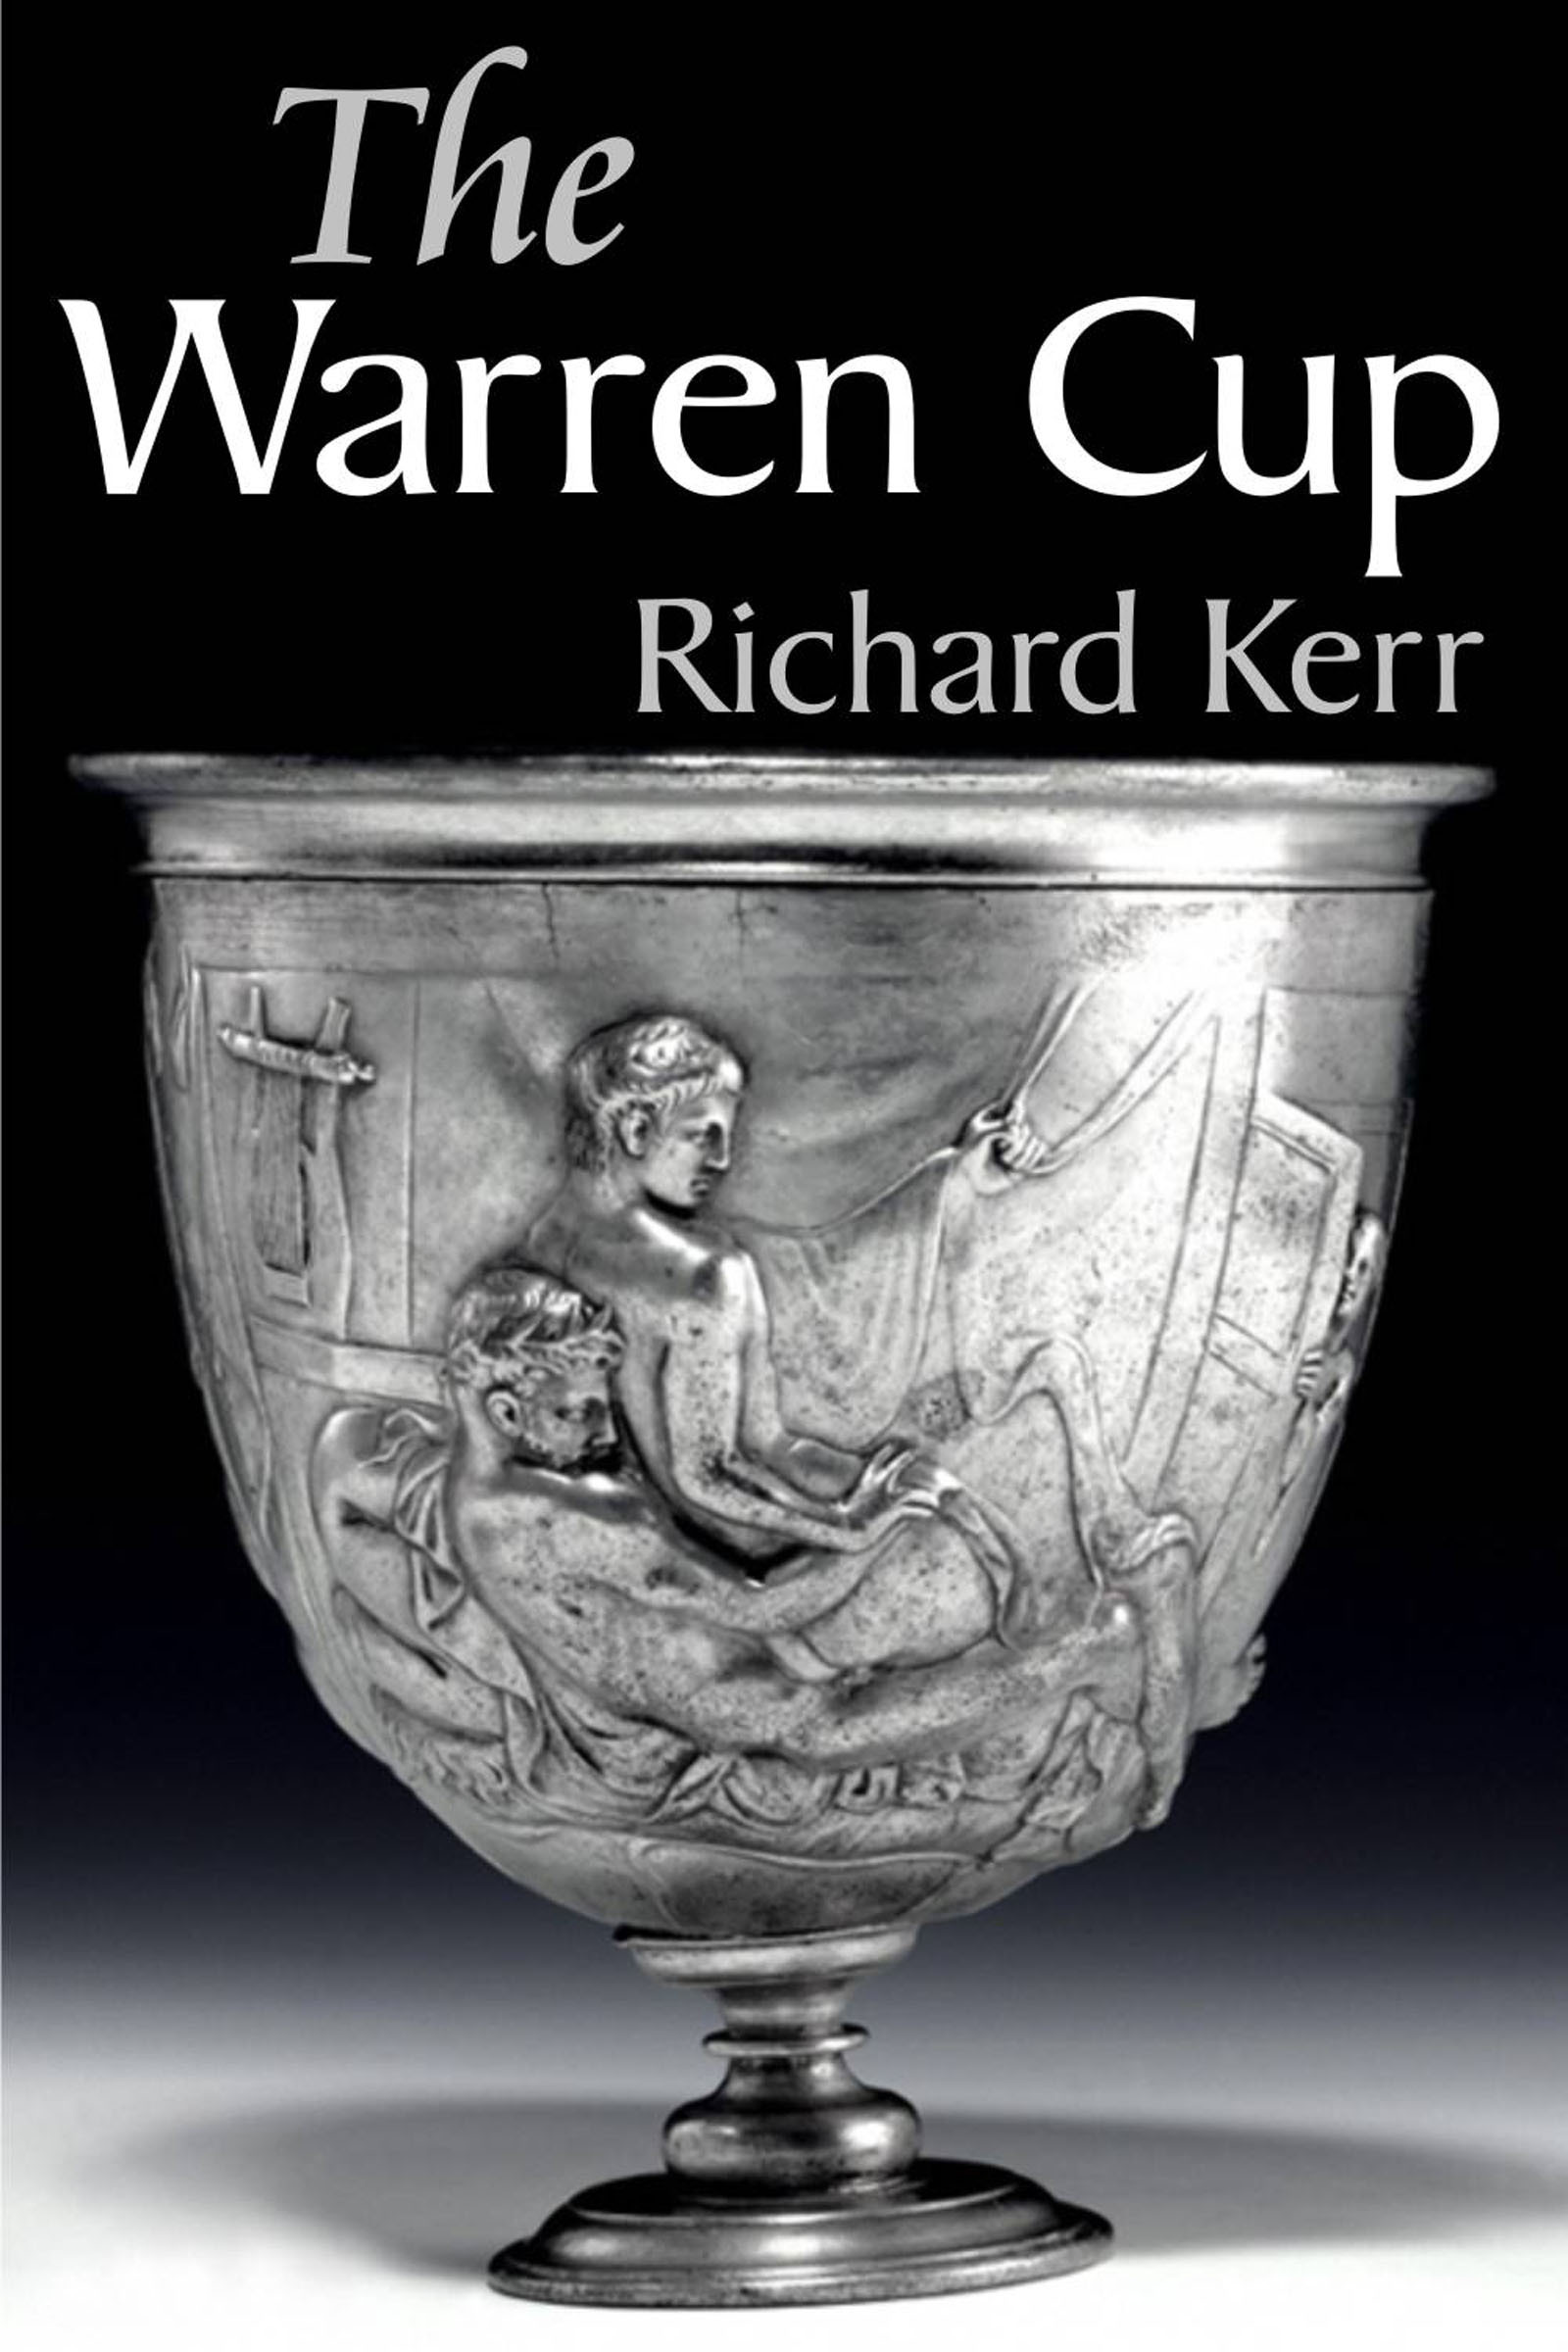 The Warren Cup